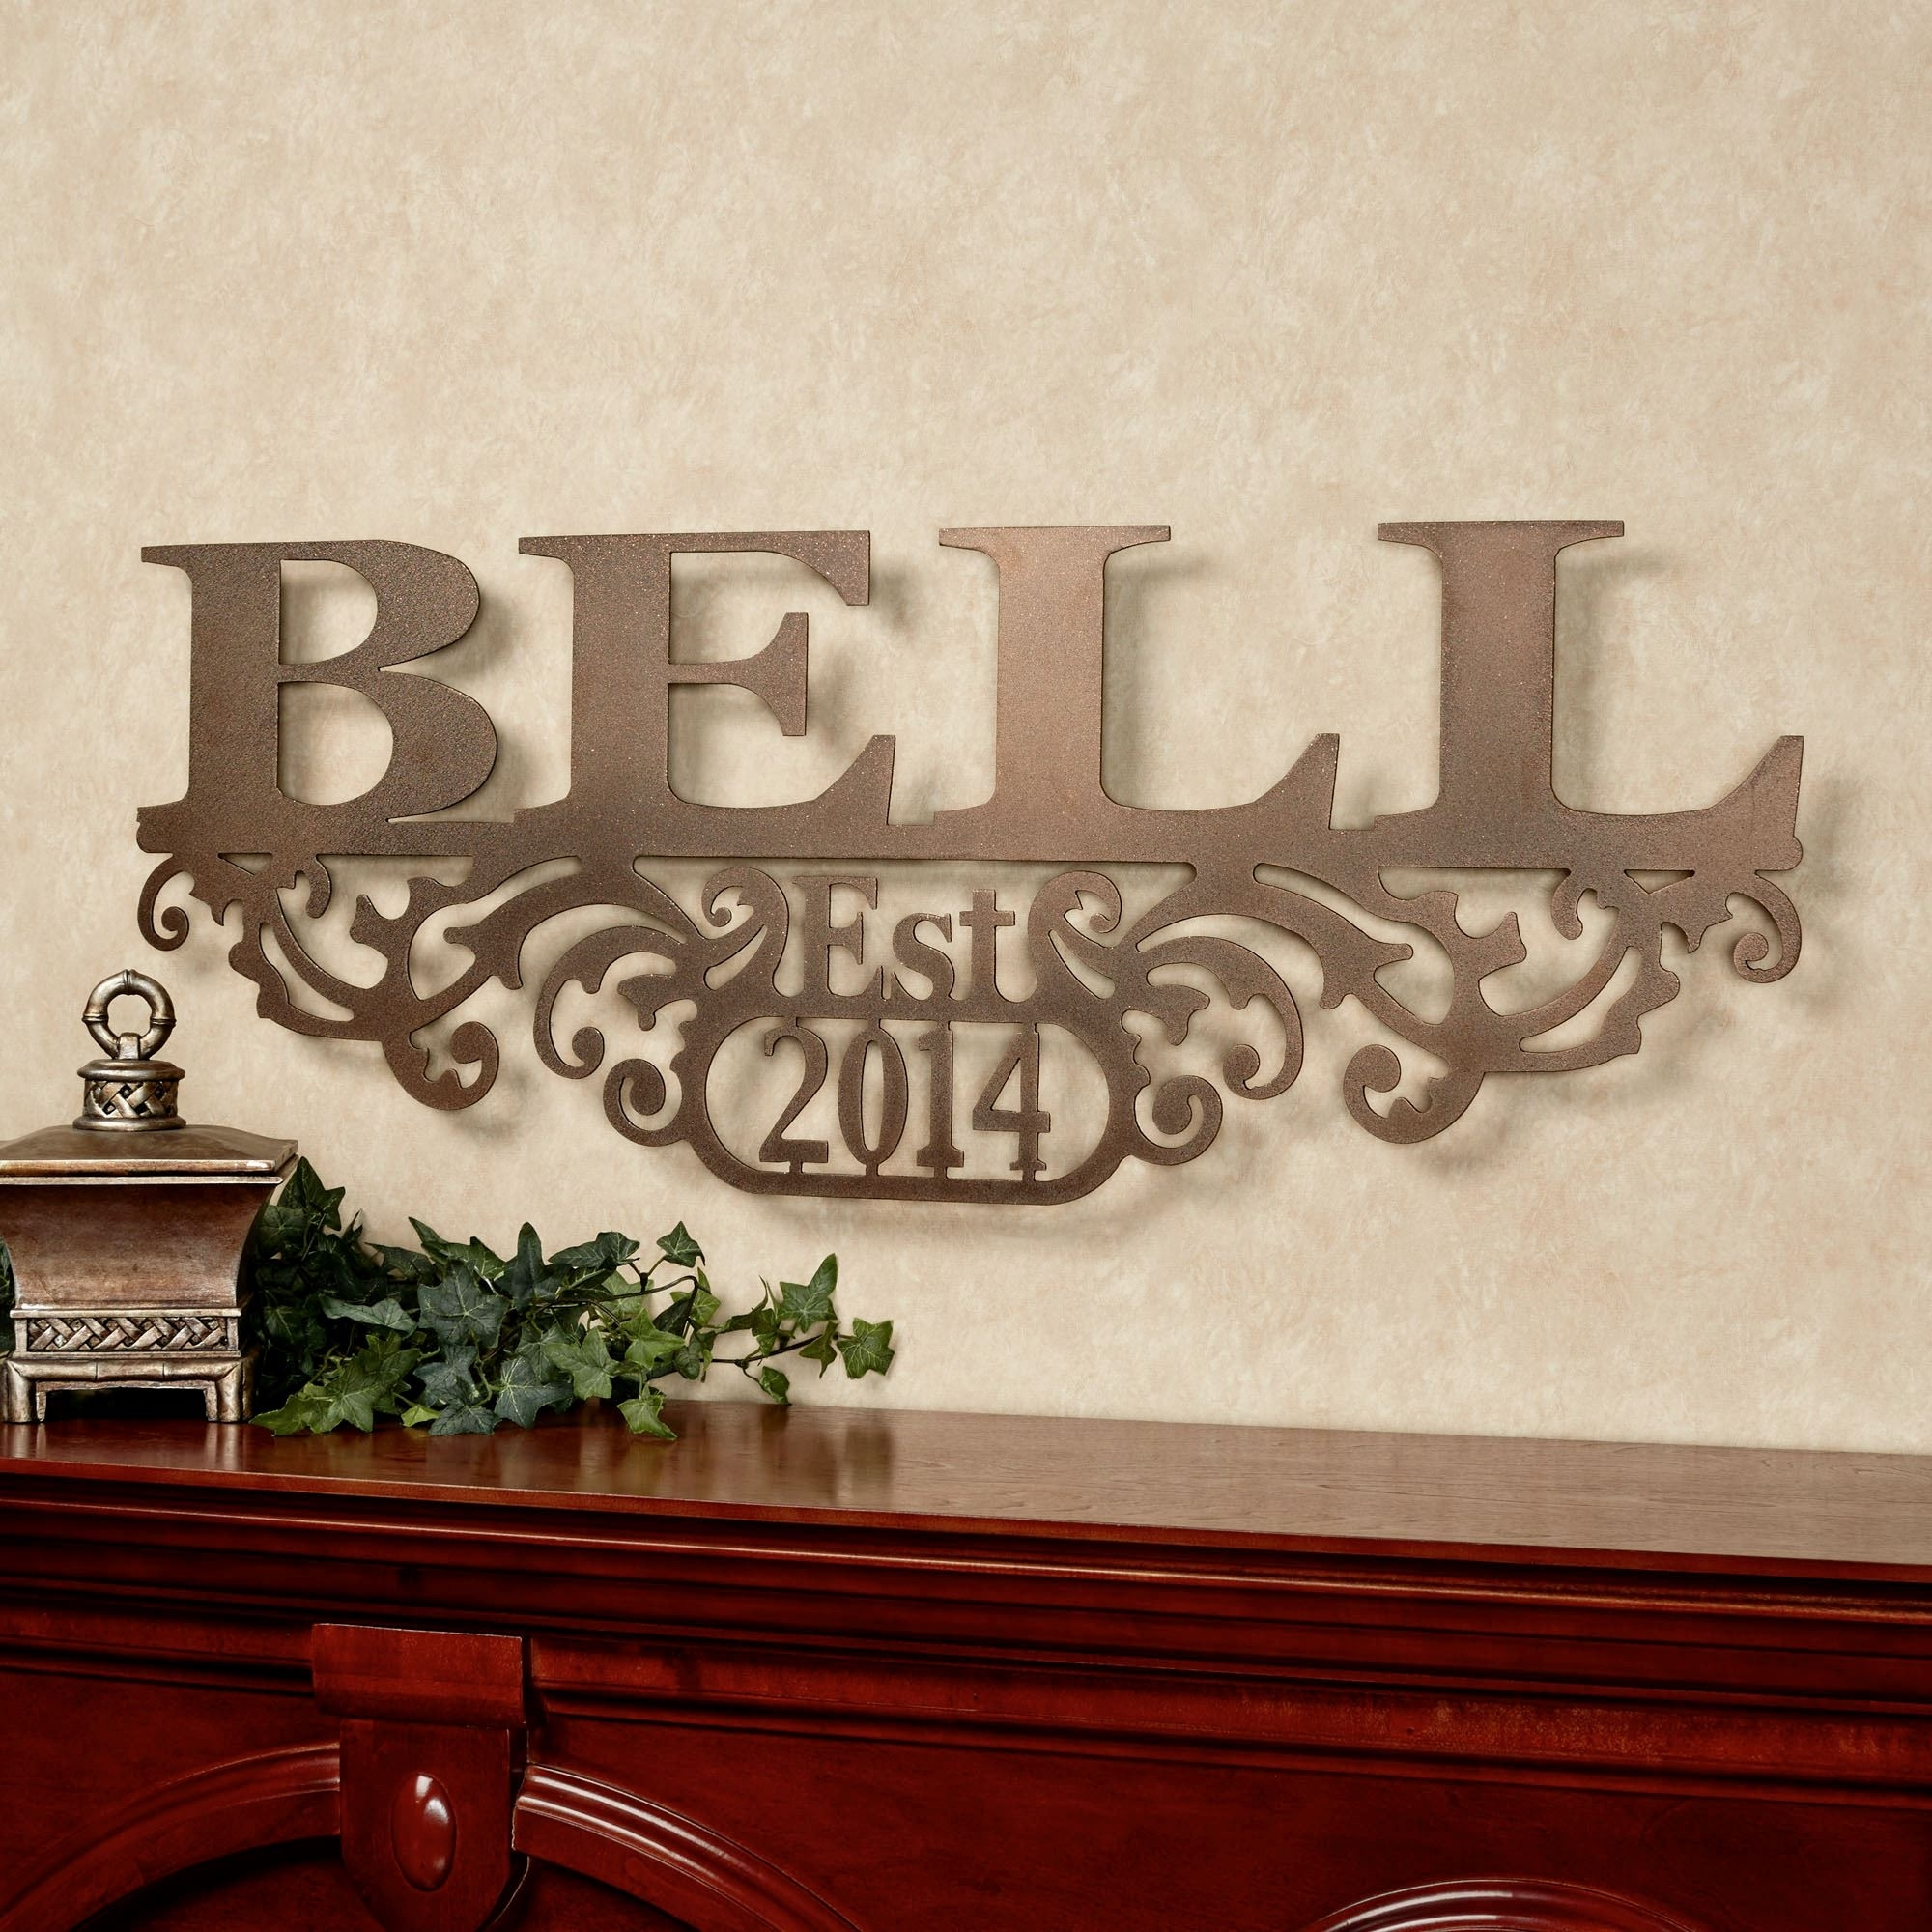 N Stunning Personalized Wall Art   Home Design And Wall Decoration Ideas Regarding Personalized Wall Art (Photo 3 of 20)